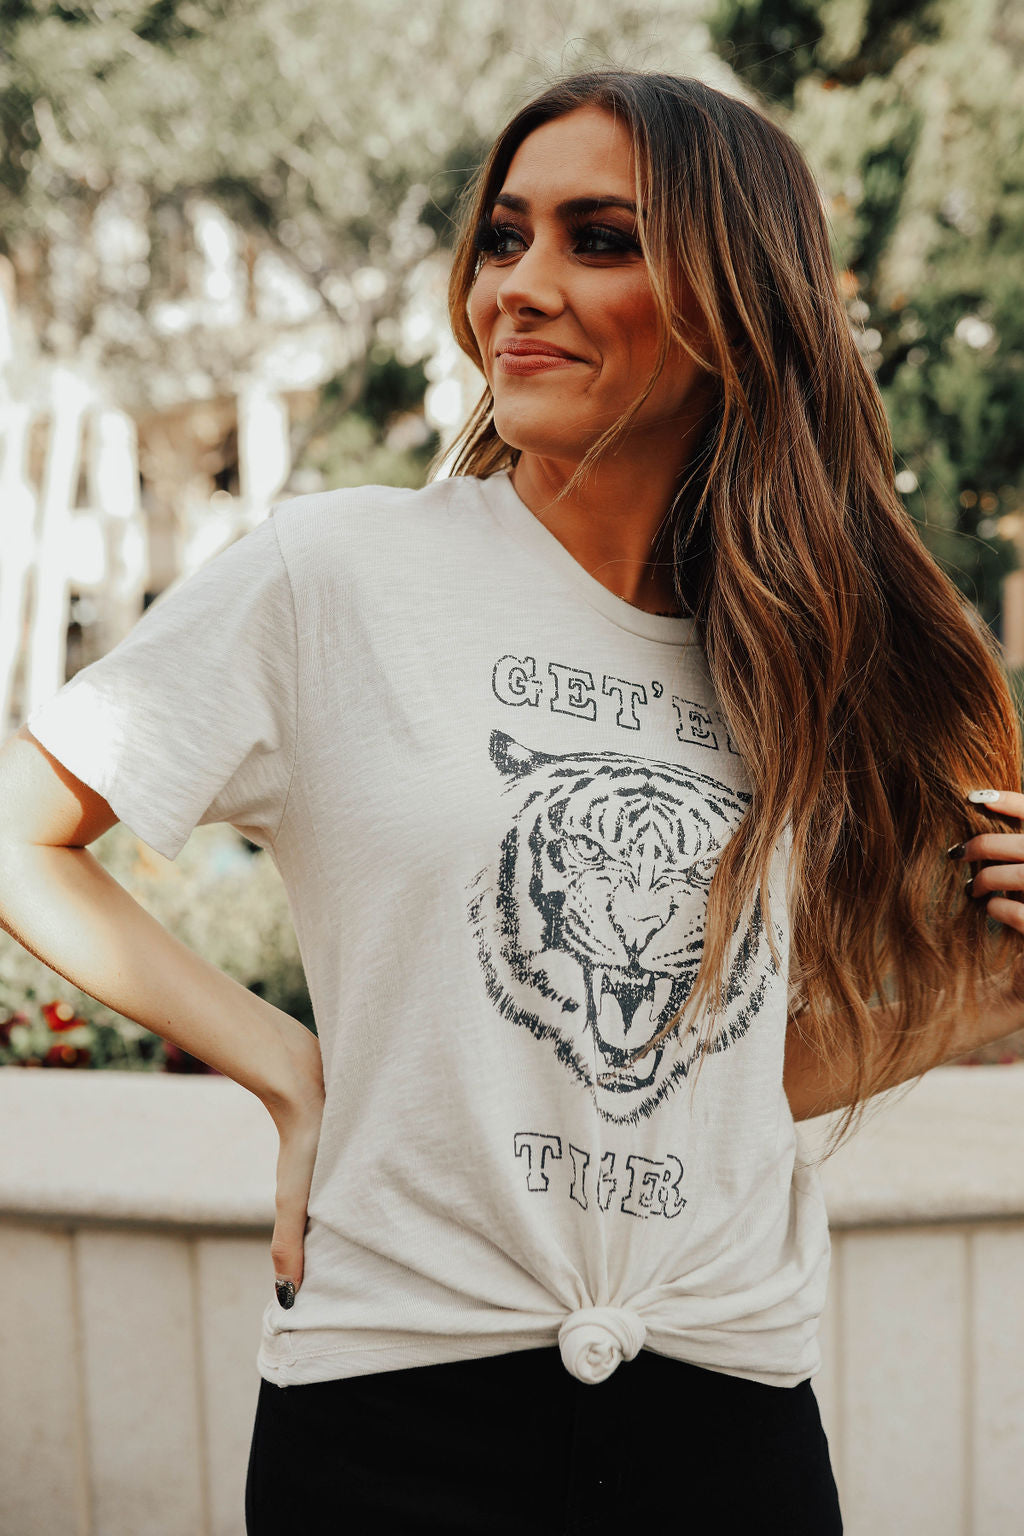 THE GET EM' TIGER GRAPHIC TEE IN CLAY